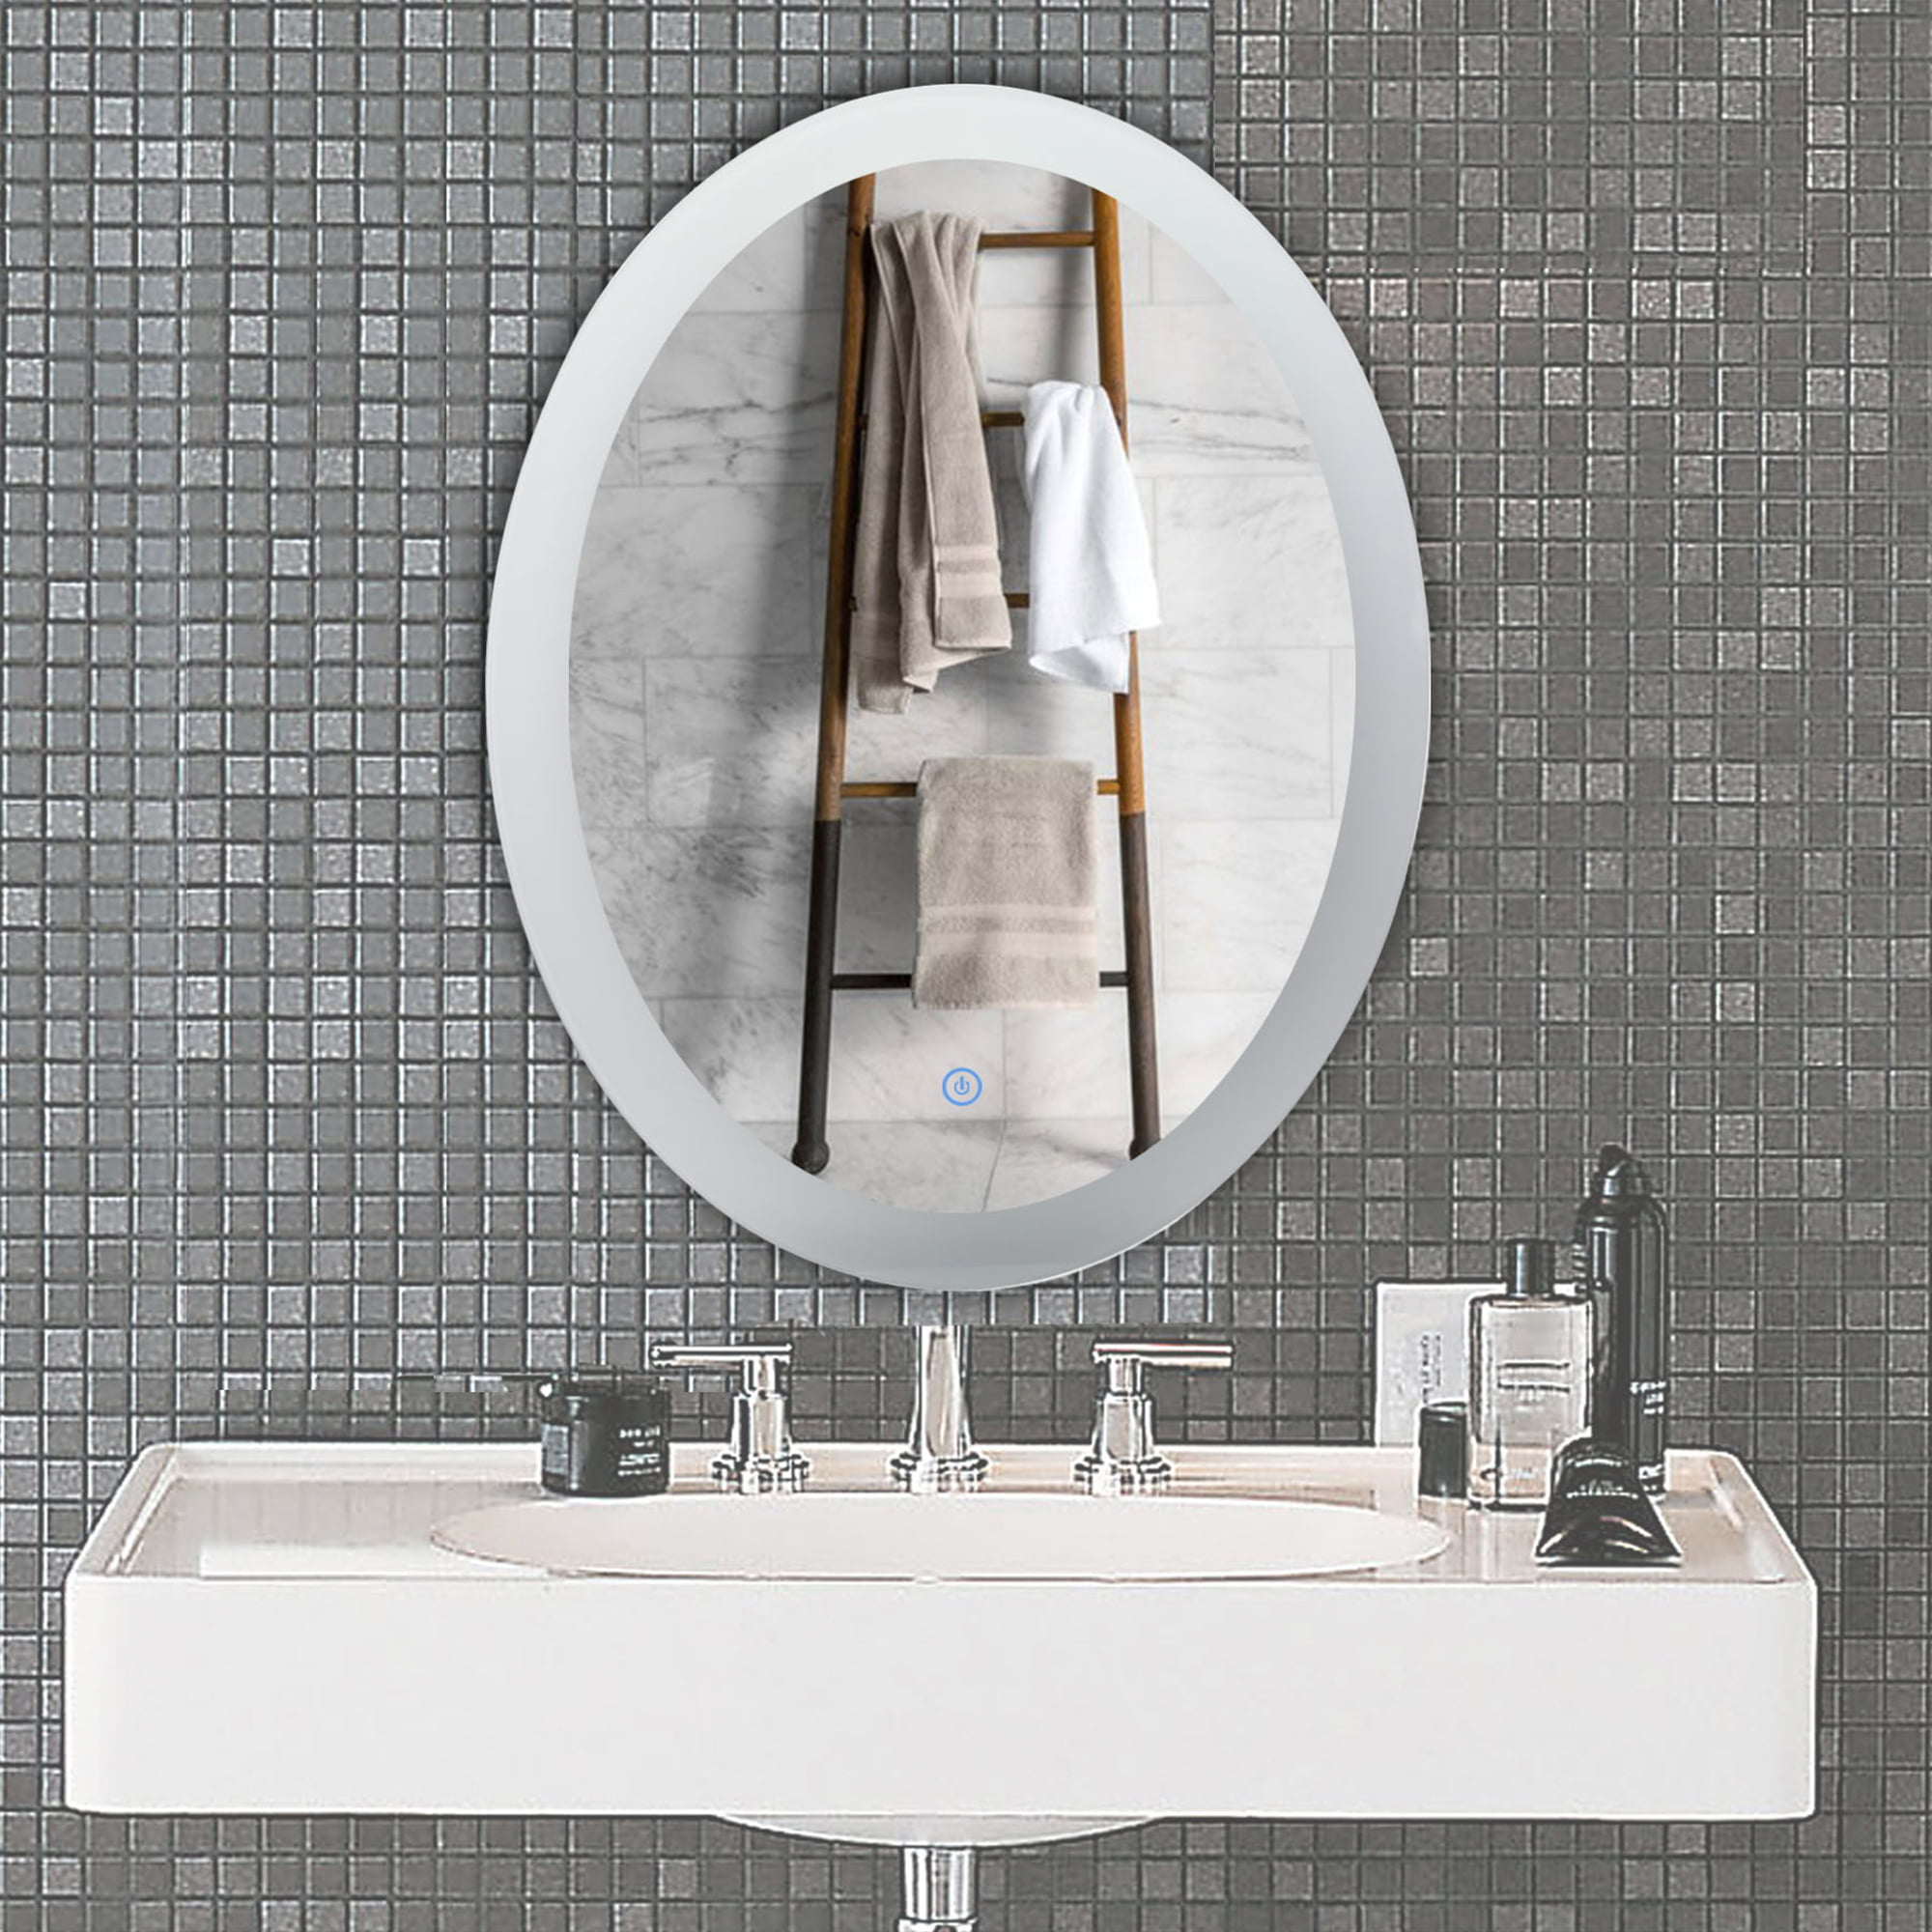 Oval Led Lighted Bathroom Mirror Plug In Wall Mounted Modern Touch Dimmable Wall Mirror With Dimmer And Lights Fogless Led Backlit Lighted Makeup Vanity Mirror Over Cosmetic Bathroom Sink Walmart Com